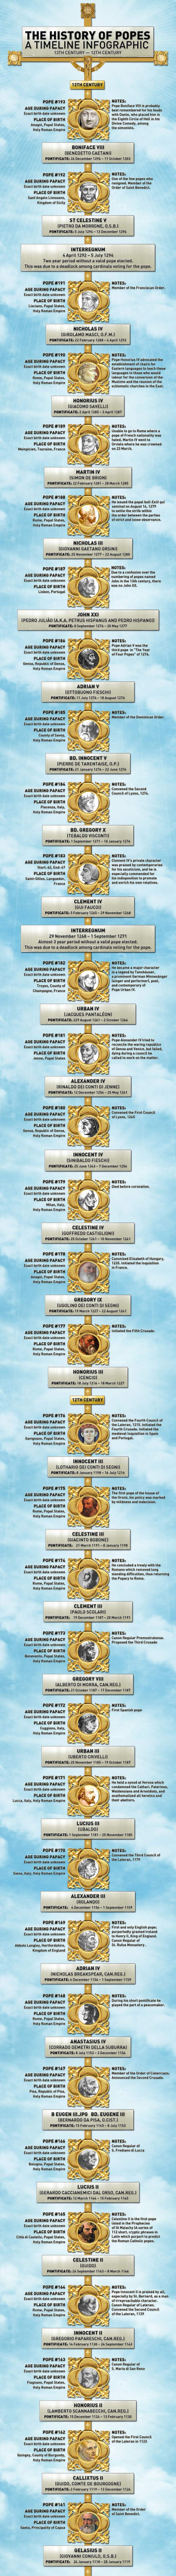 list of popes through history infographic